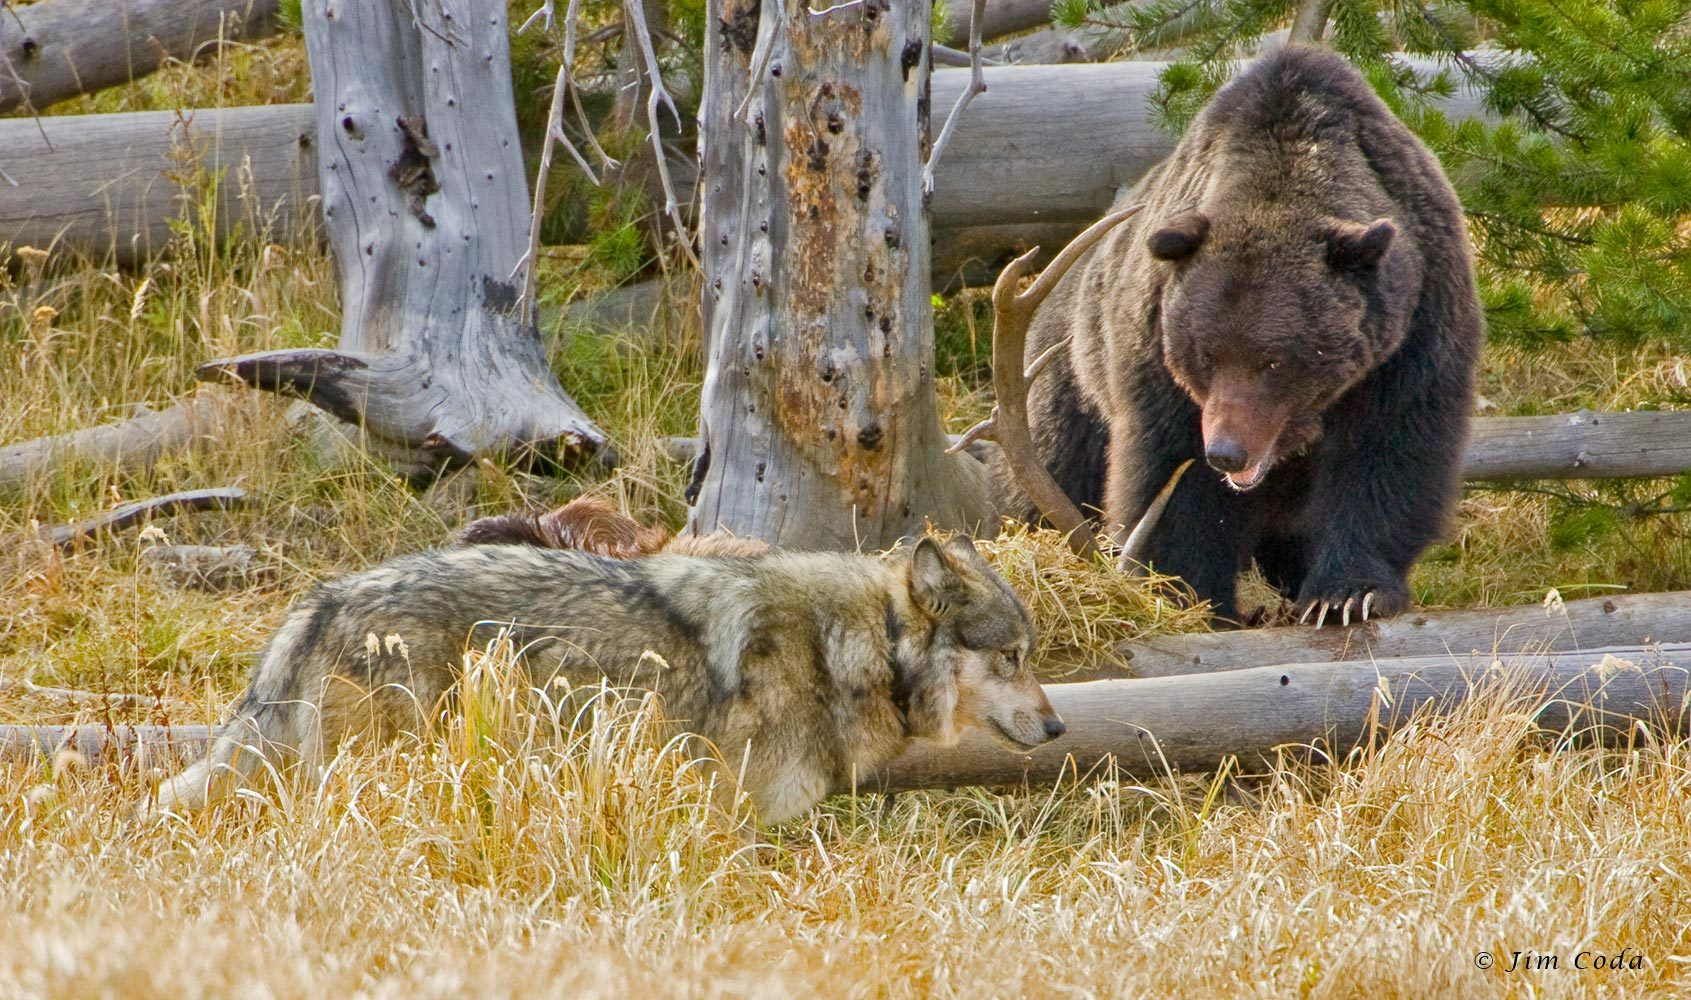 Grizzly Bear and Wolf, Yellowstone National Park, Wyoming